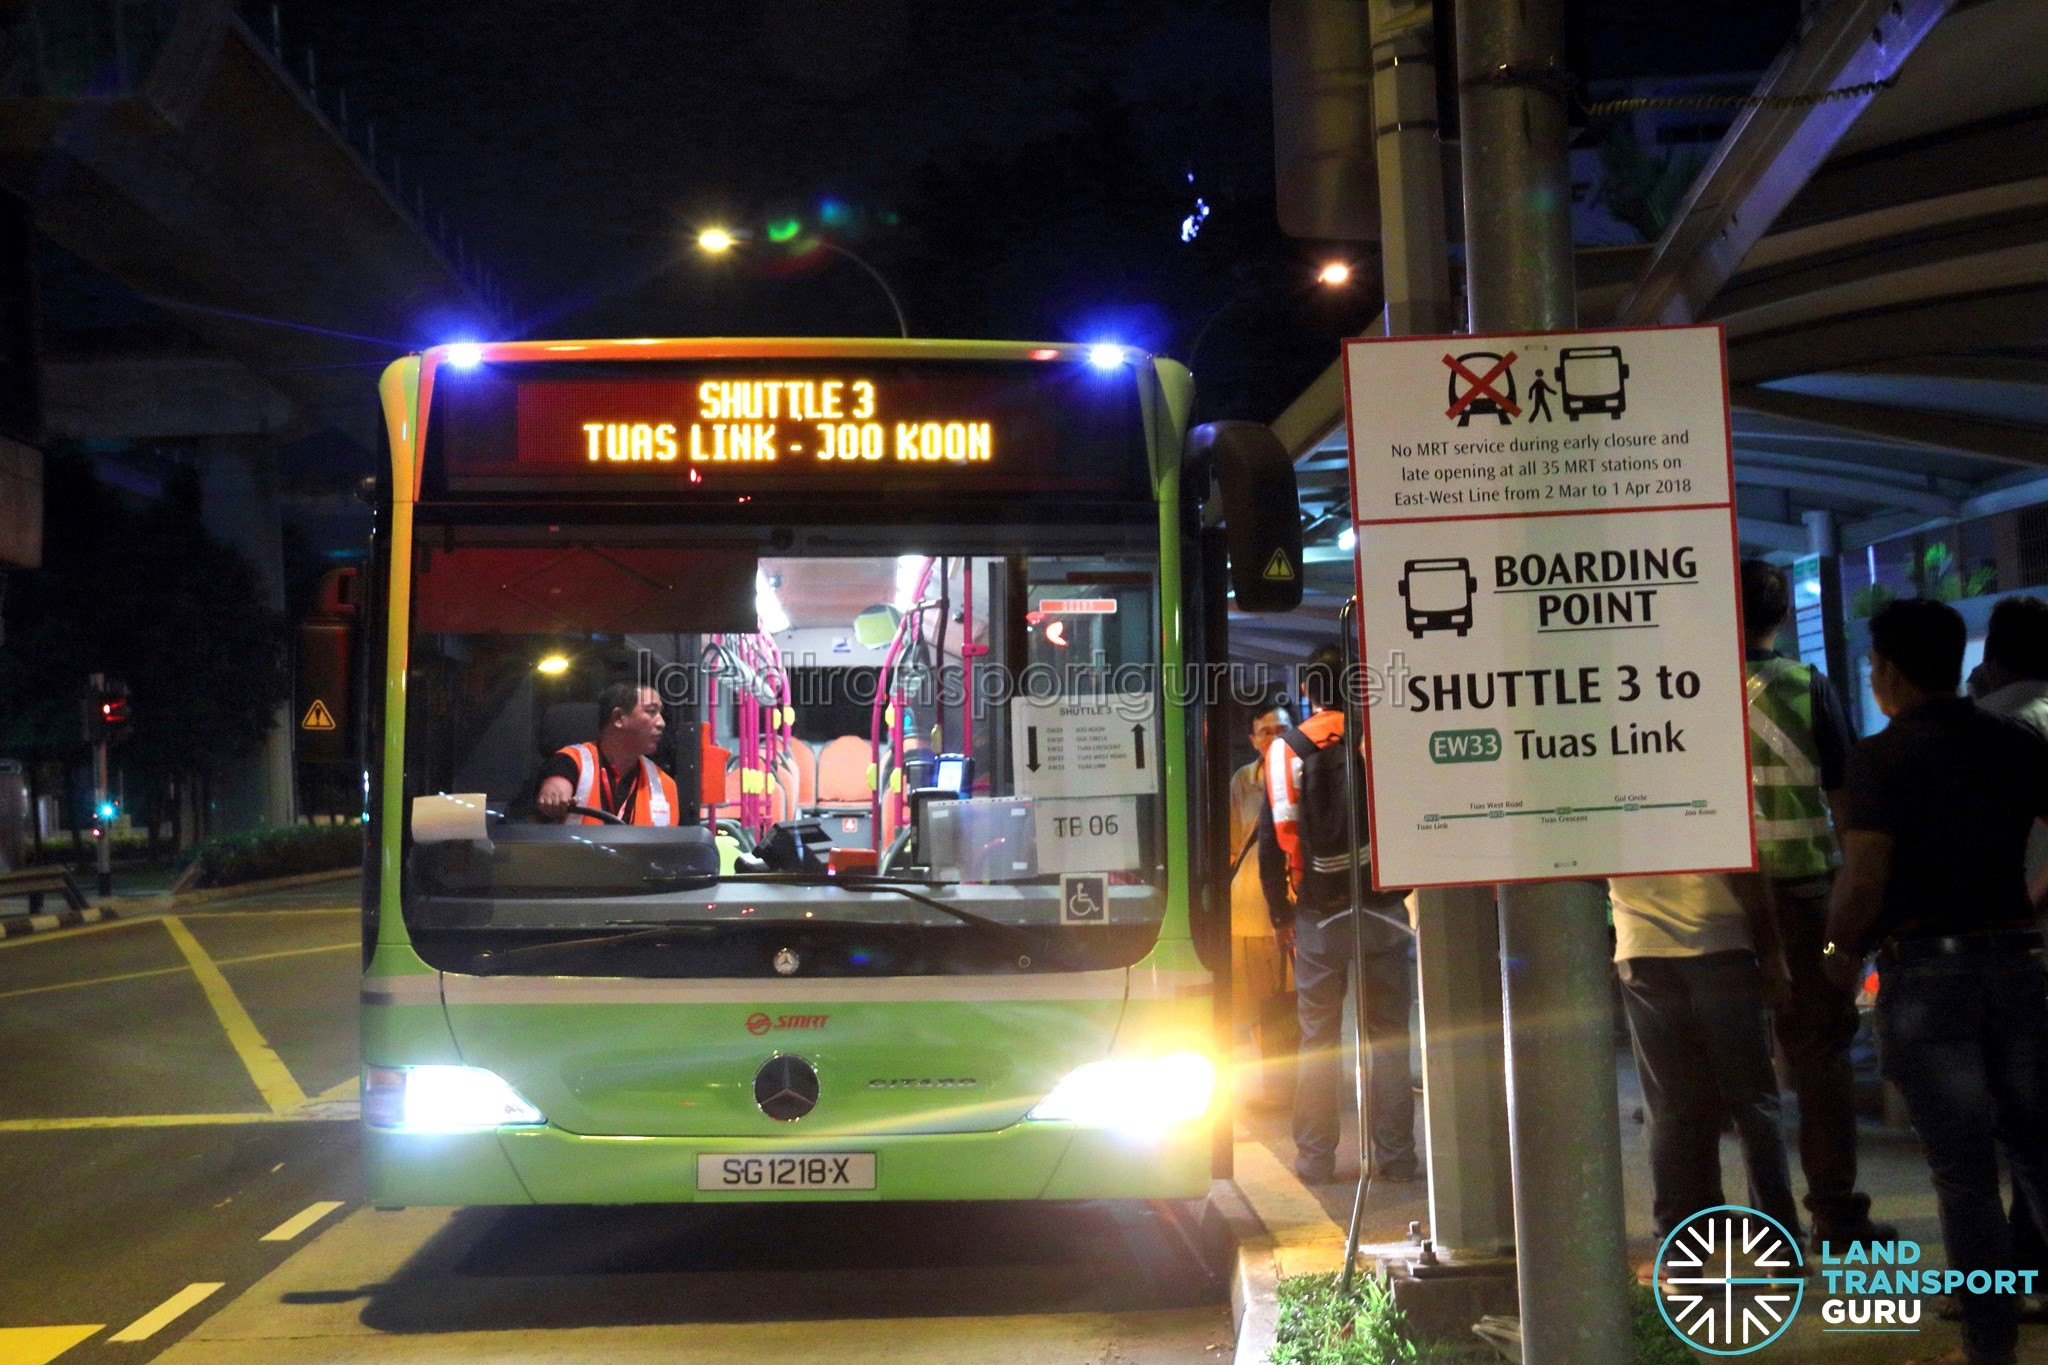 Shuttle 3 pick-up point at Joo Koon